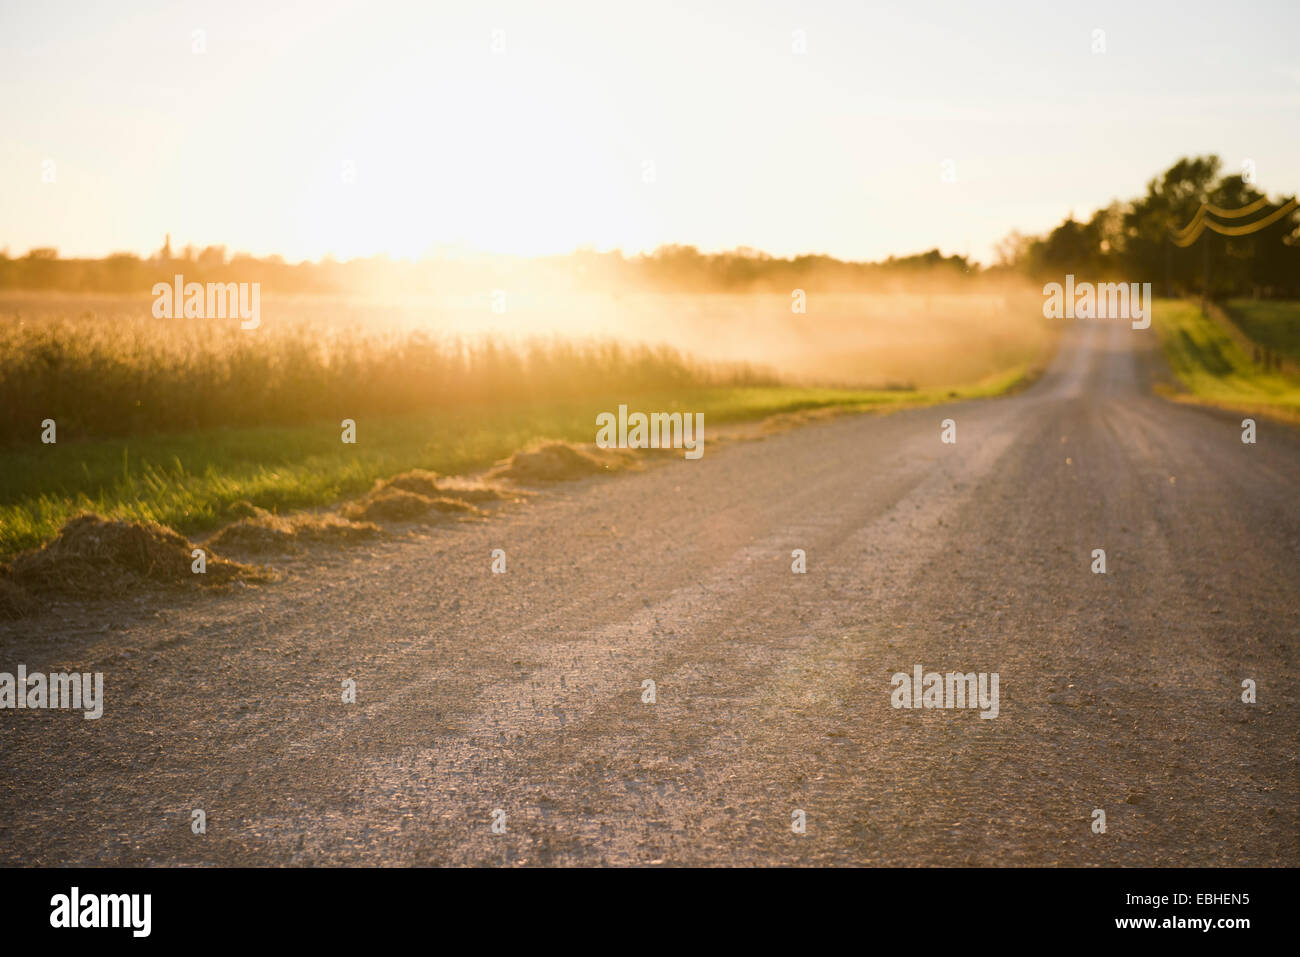 Rural road and mists over fields at sunrise, Missouri, USA - Stock Image